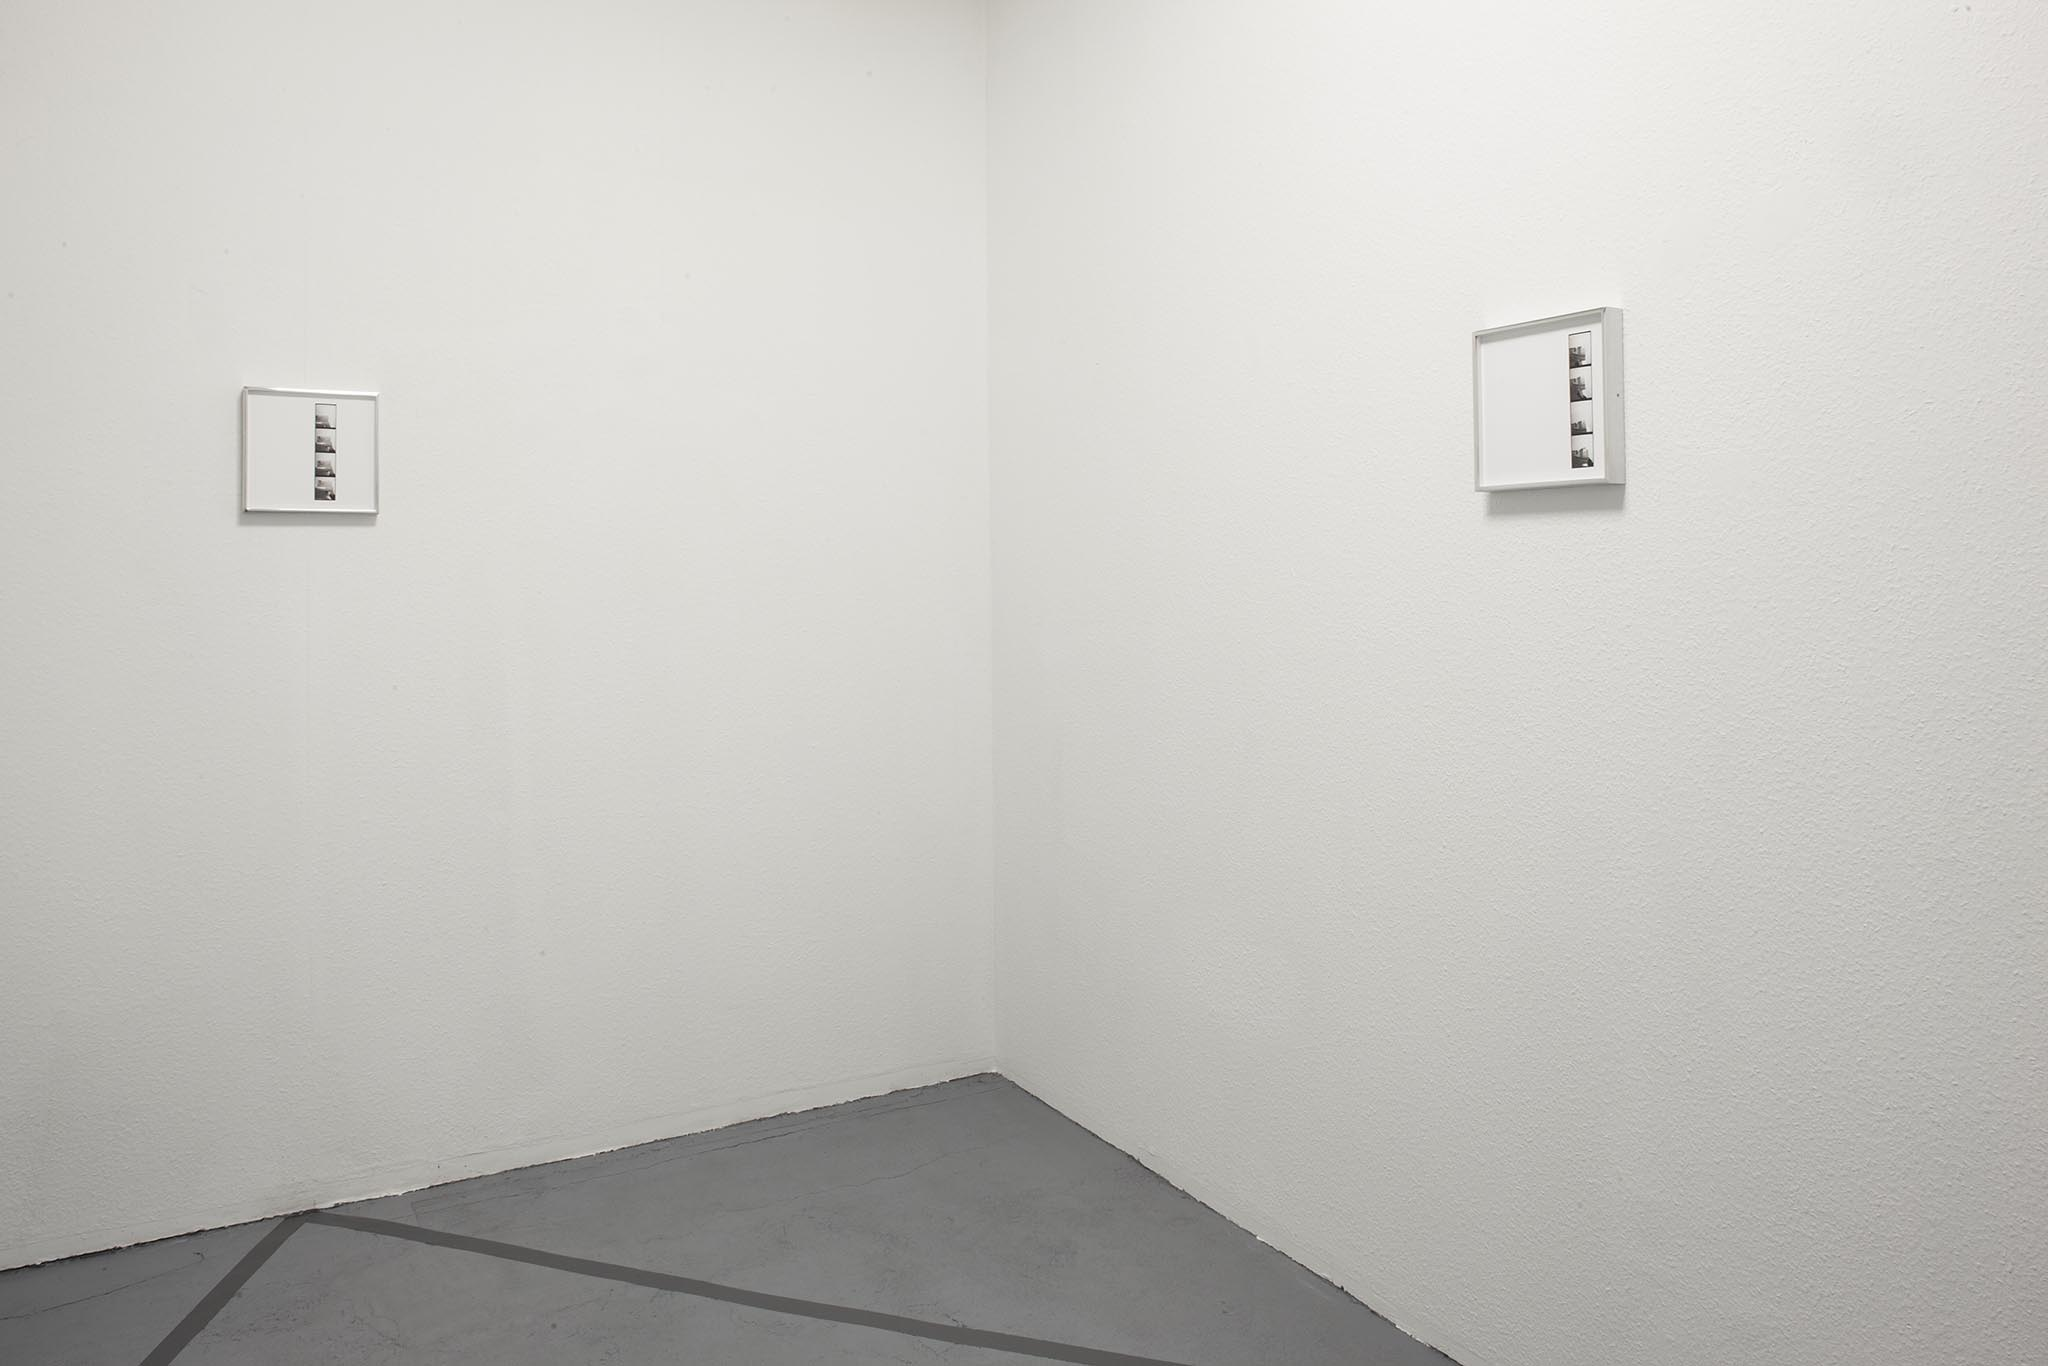 Vittorio Santoro,  Four Speakers' Corners, I , 2014, four photo booth stripes, each framed in a welded aluminum frame (25x25 cm), silver-grey adhesive tape on floor. Dimensions vary with installation